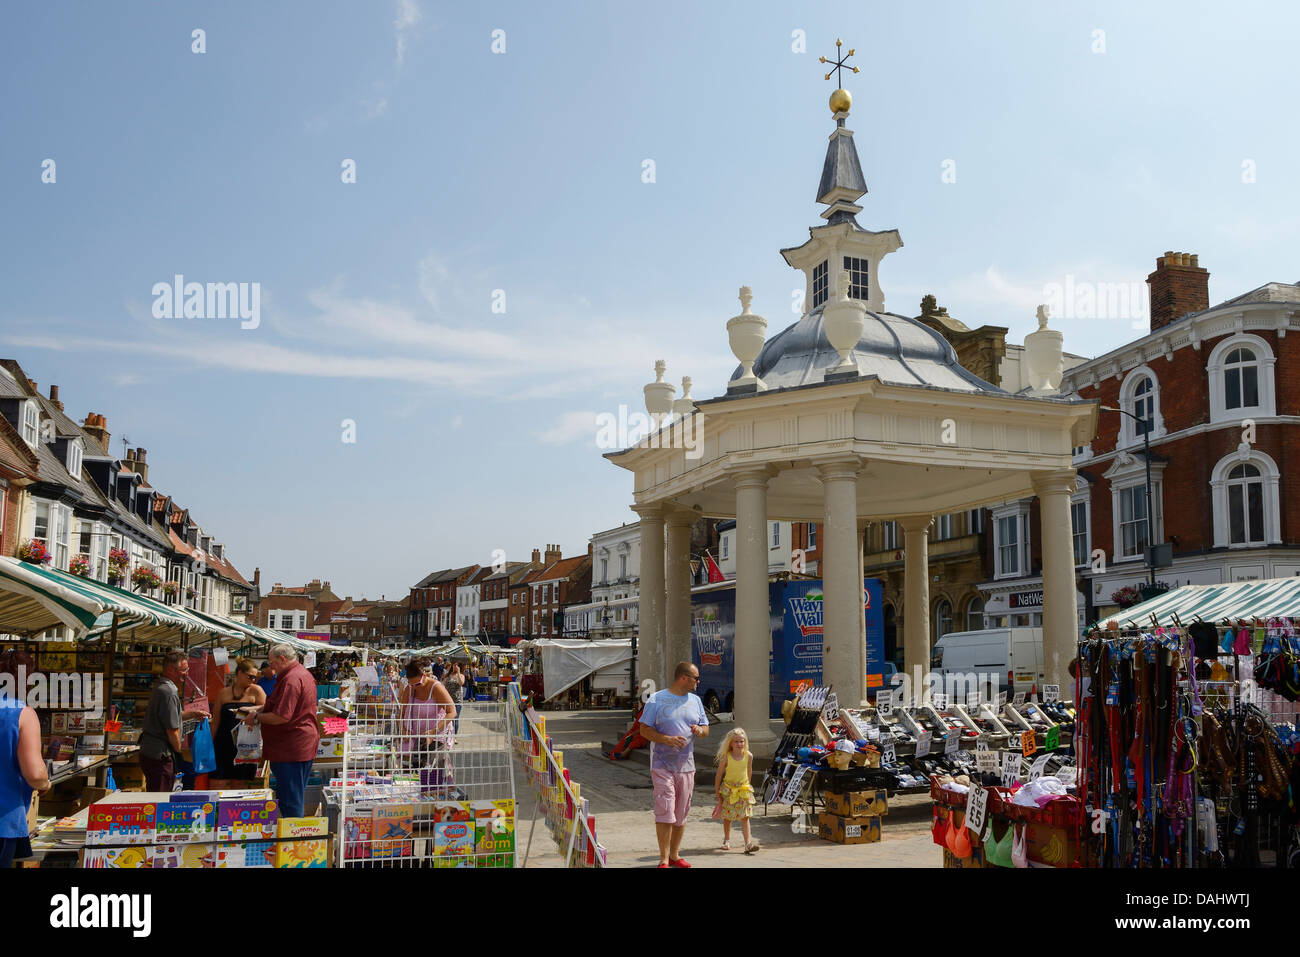 The bandstand and saturday market in Beverley town centre UK - Stock Image